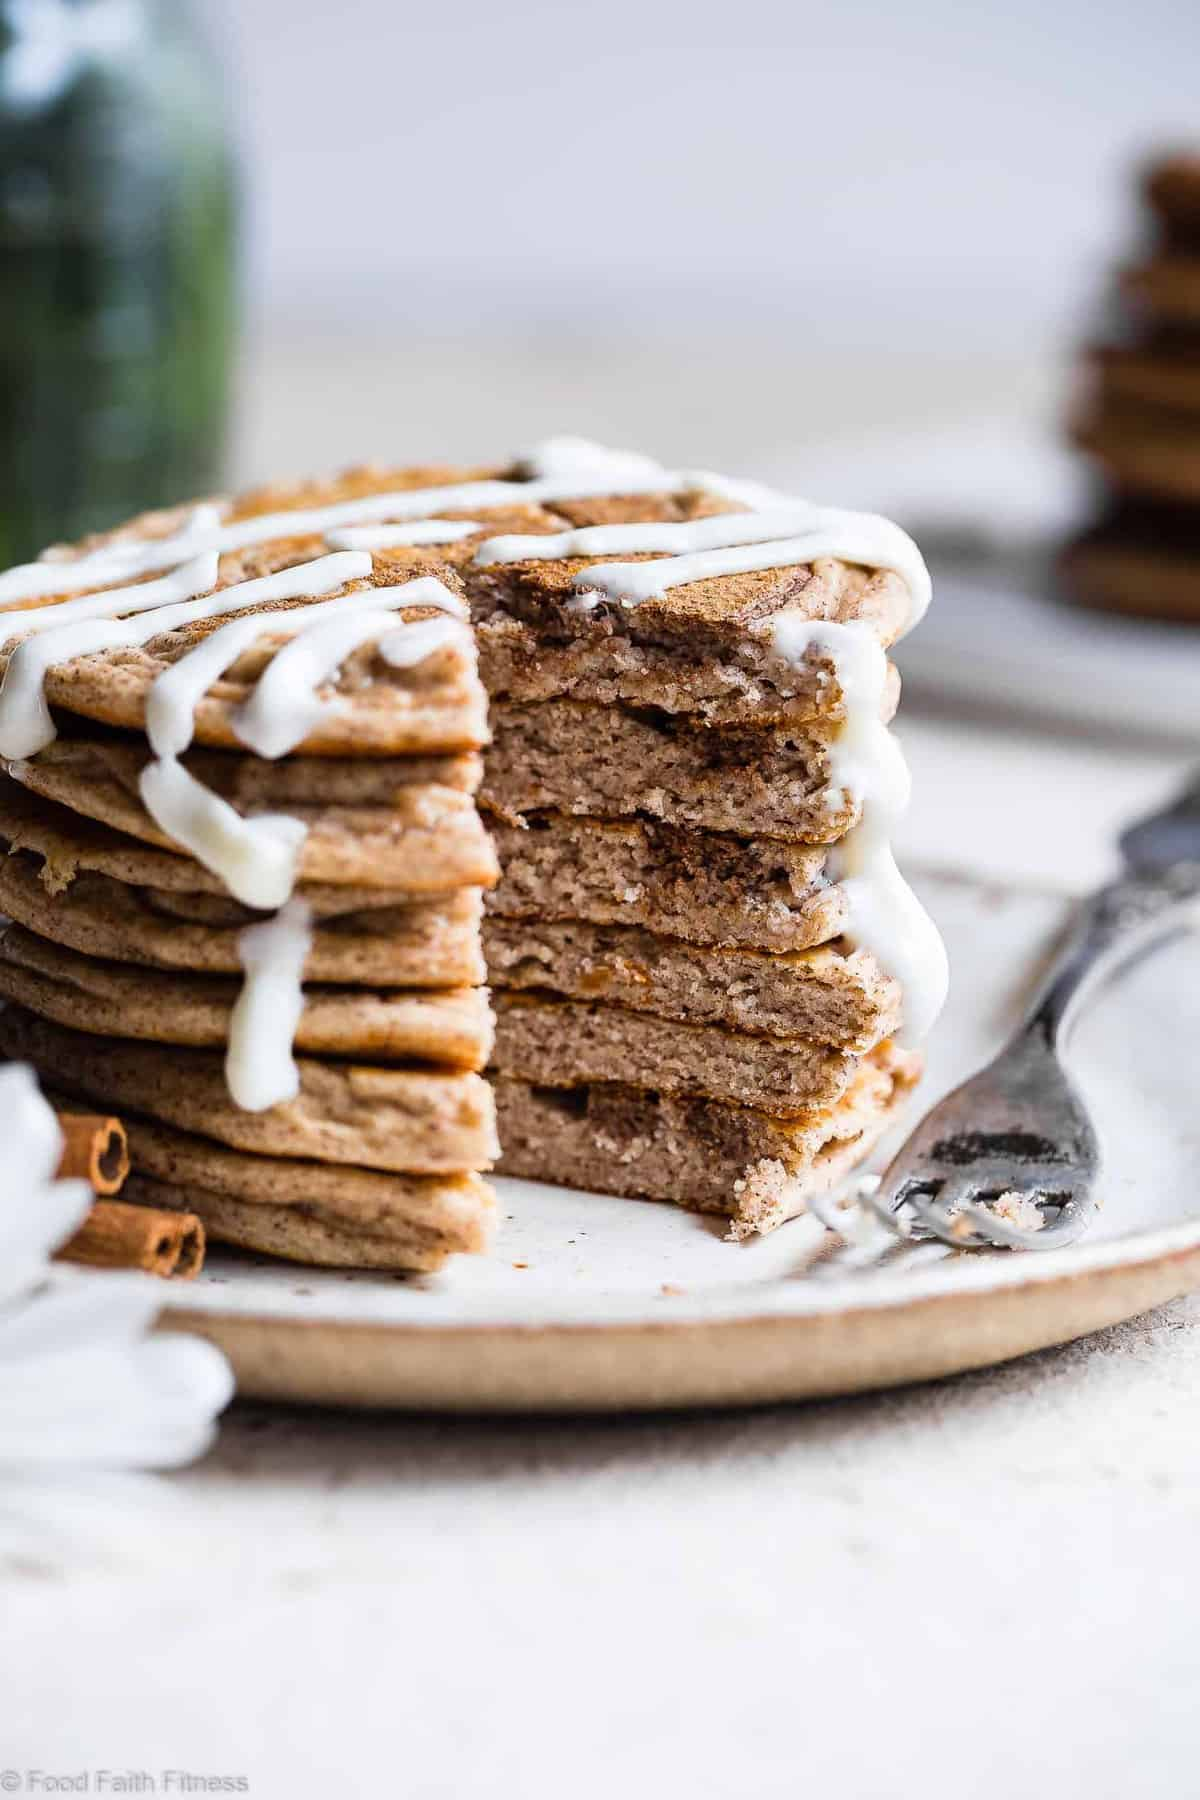 Cinnamon Roll Keto Protein Pancakes - This EASY, low carb, gluten free healthy protein pancakes recipe is going to be your new favorite breakfast! Great for kids and adults and packed with 23g of protein! Who doesn't want to wake up to healthy cinnamon rolls?! | #Foodfaithfitness | #Keto #Lowcarb #Glutenfree #Healthy #Pancakes